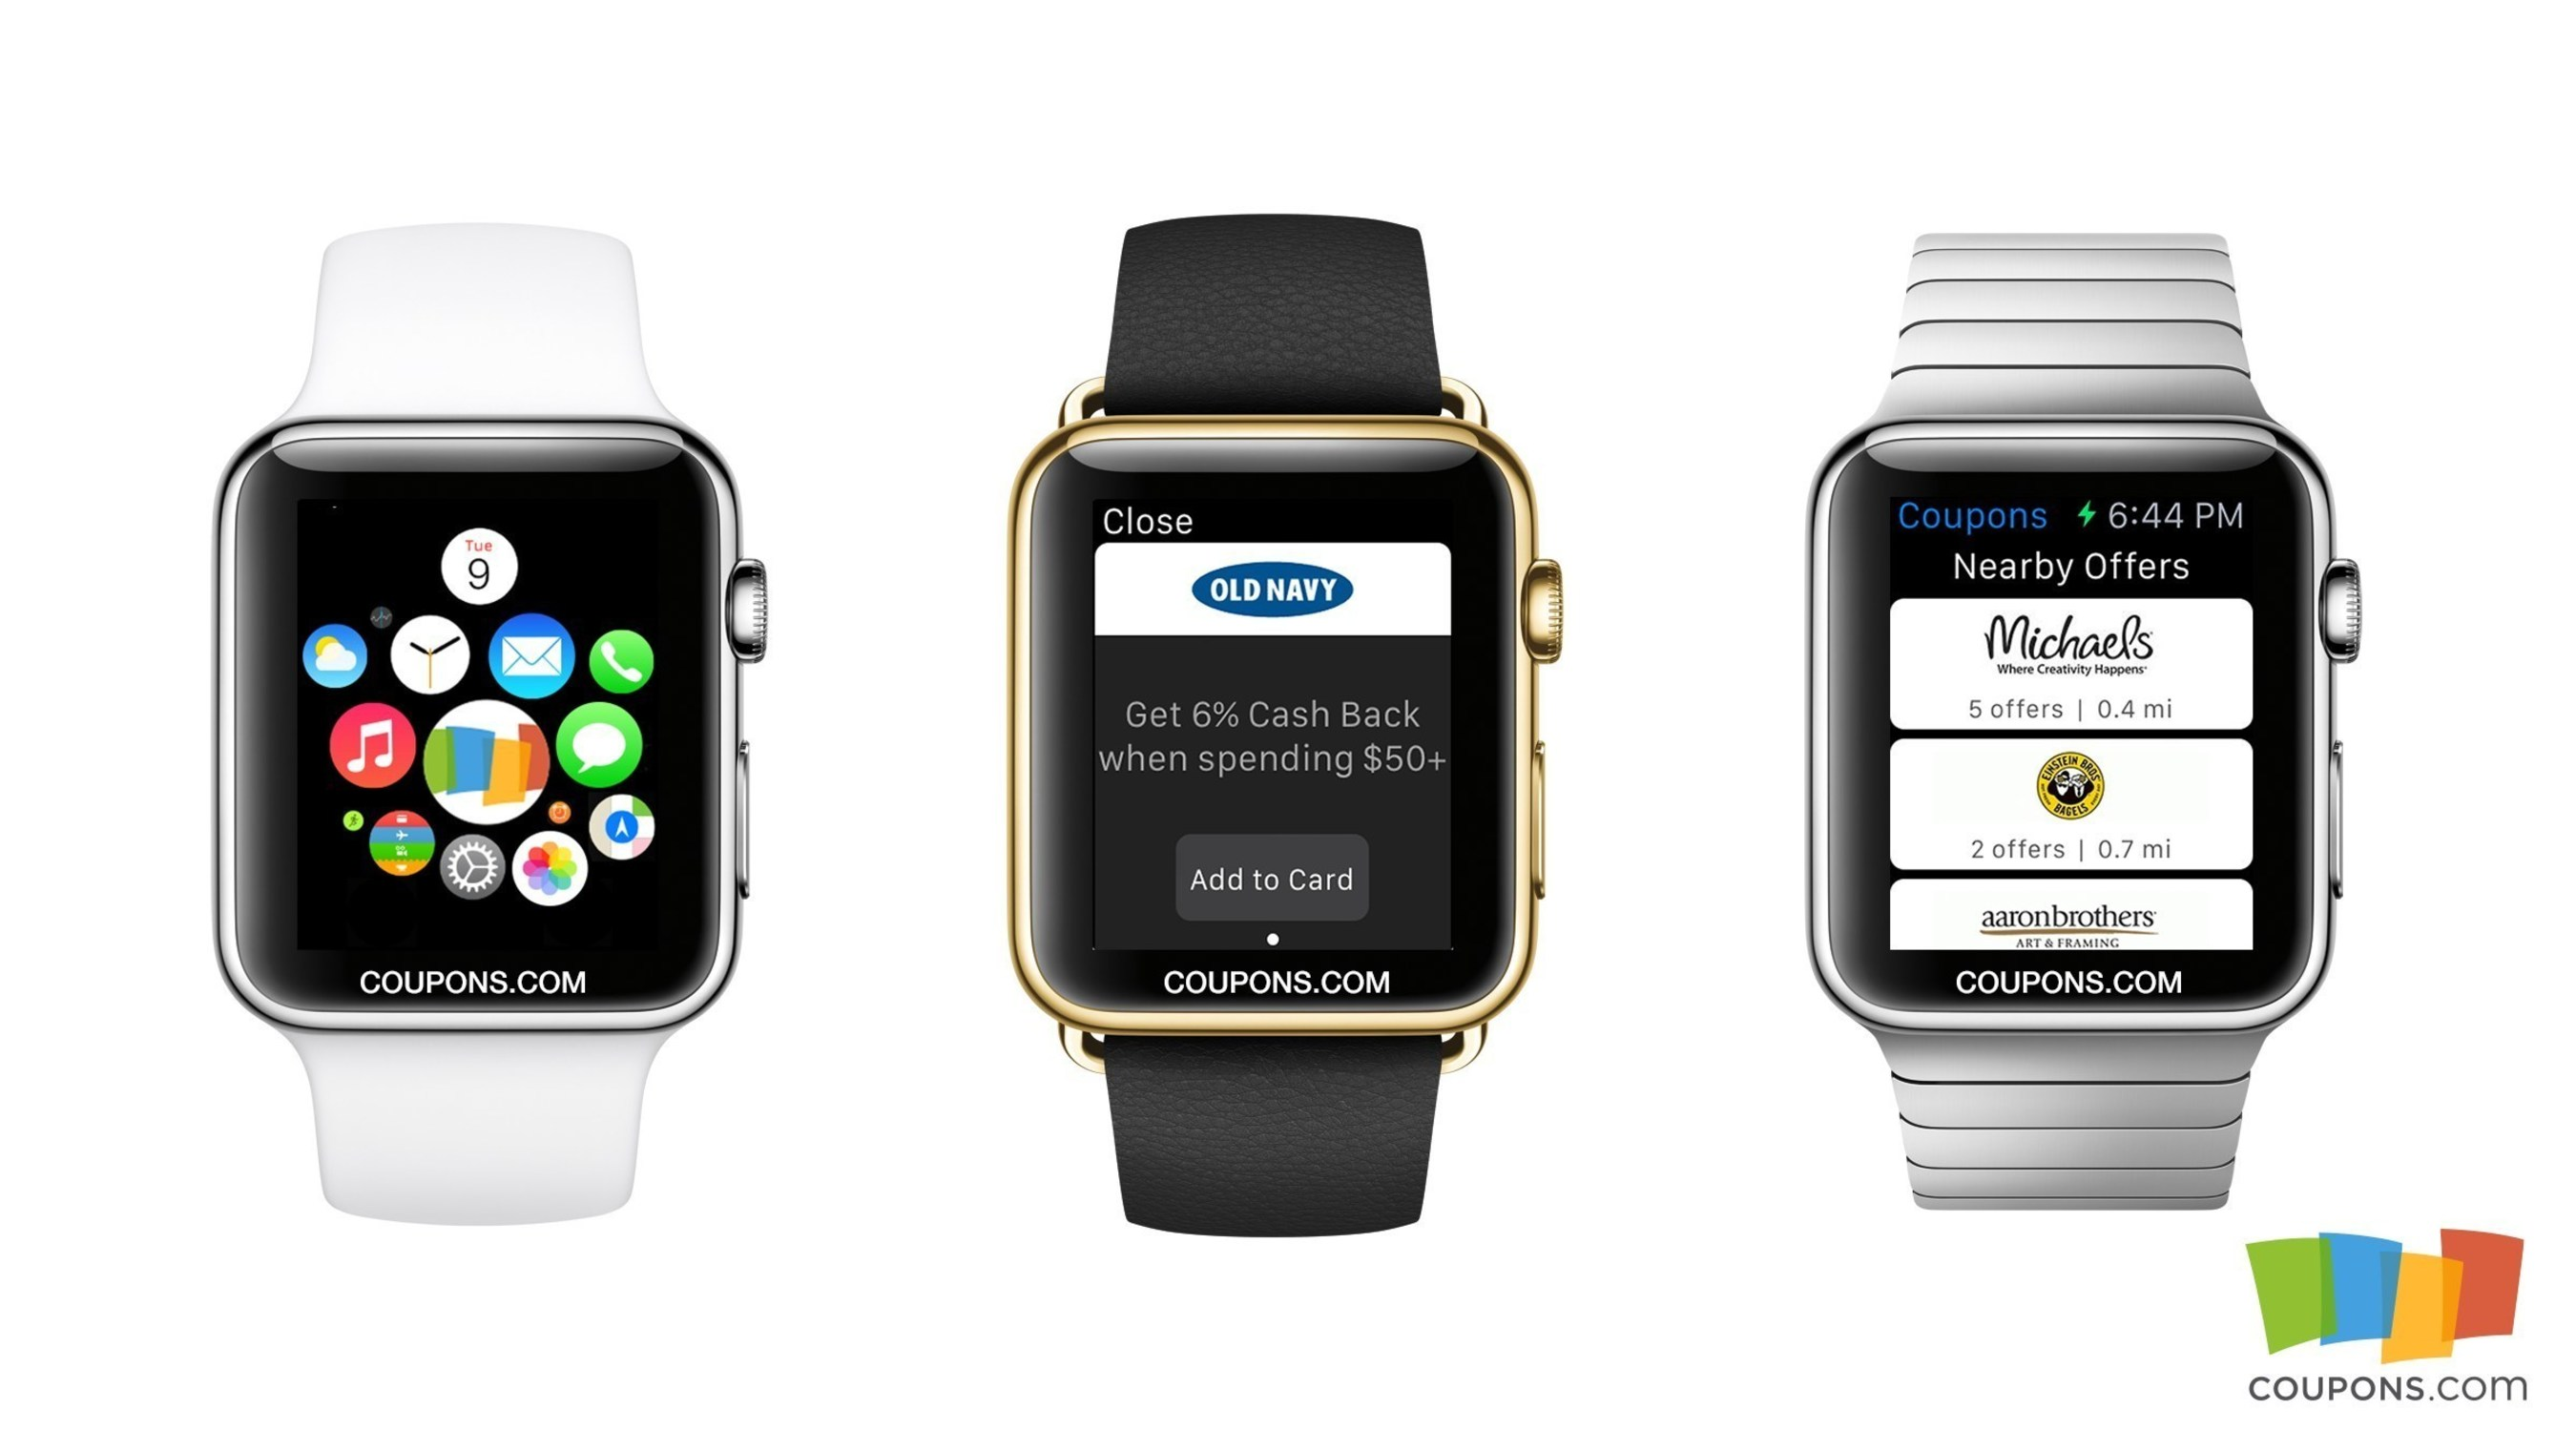 Coupons apple watch